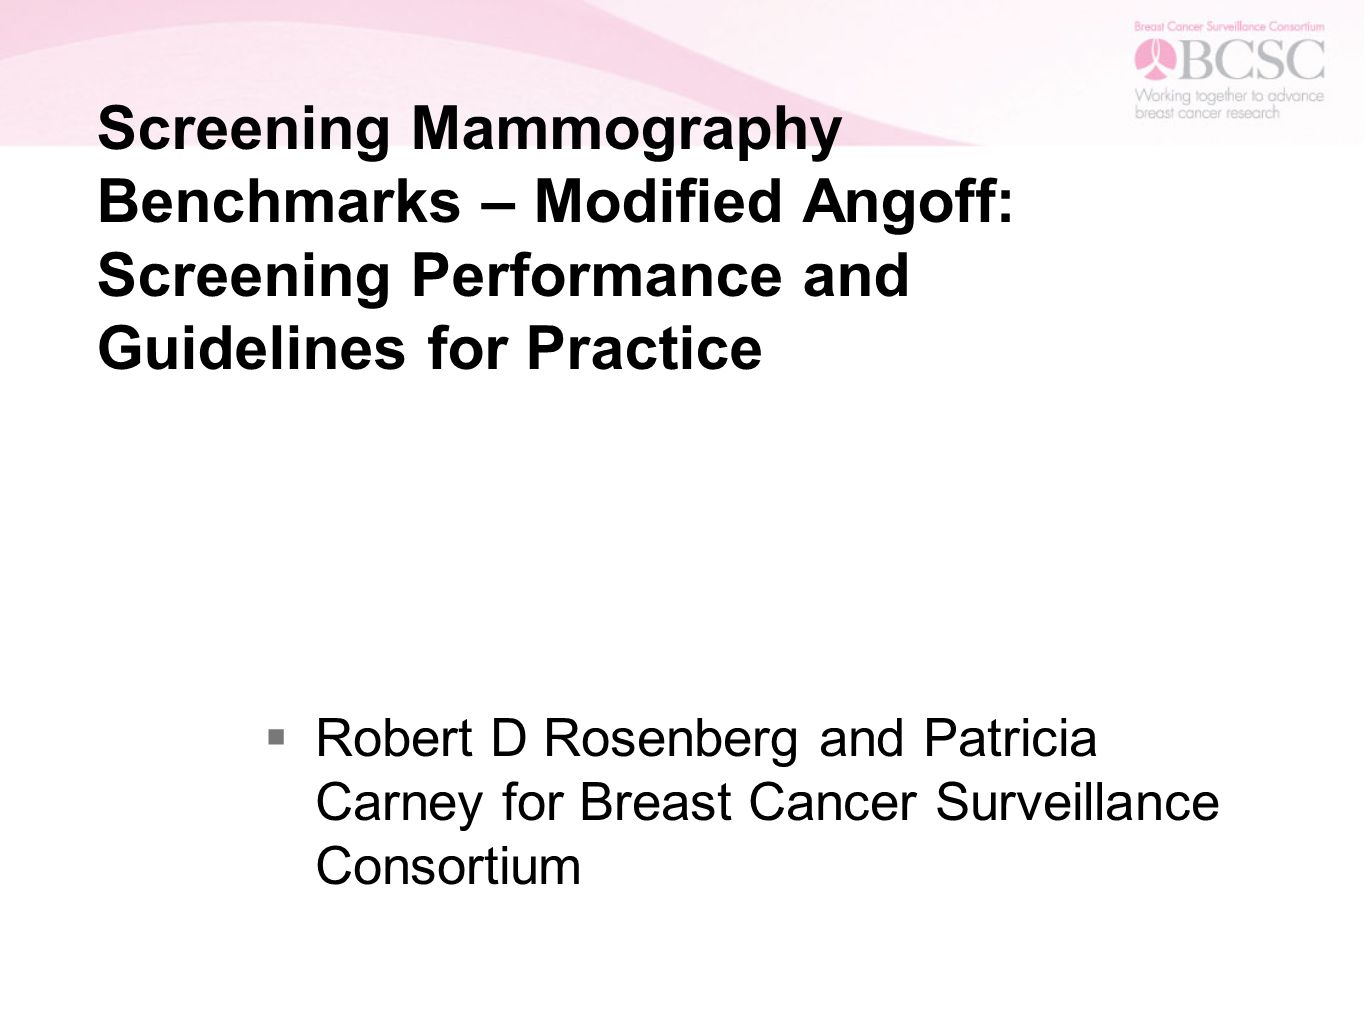 Screening mammography benchmarks modified angoff screening 1 screening mammography benchmarks modified angoff screening performance and guidelines for practice robert d rosenberg and patricia carney for breast xflitez Gallery